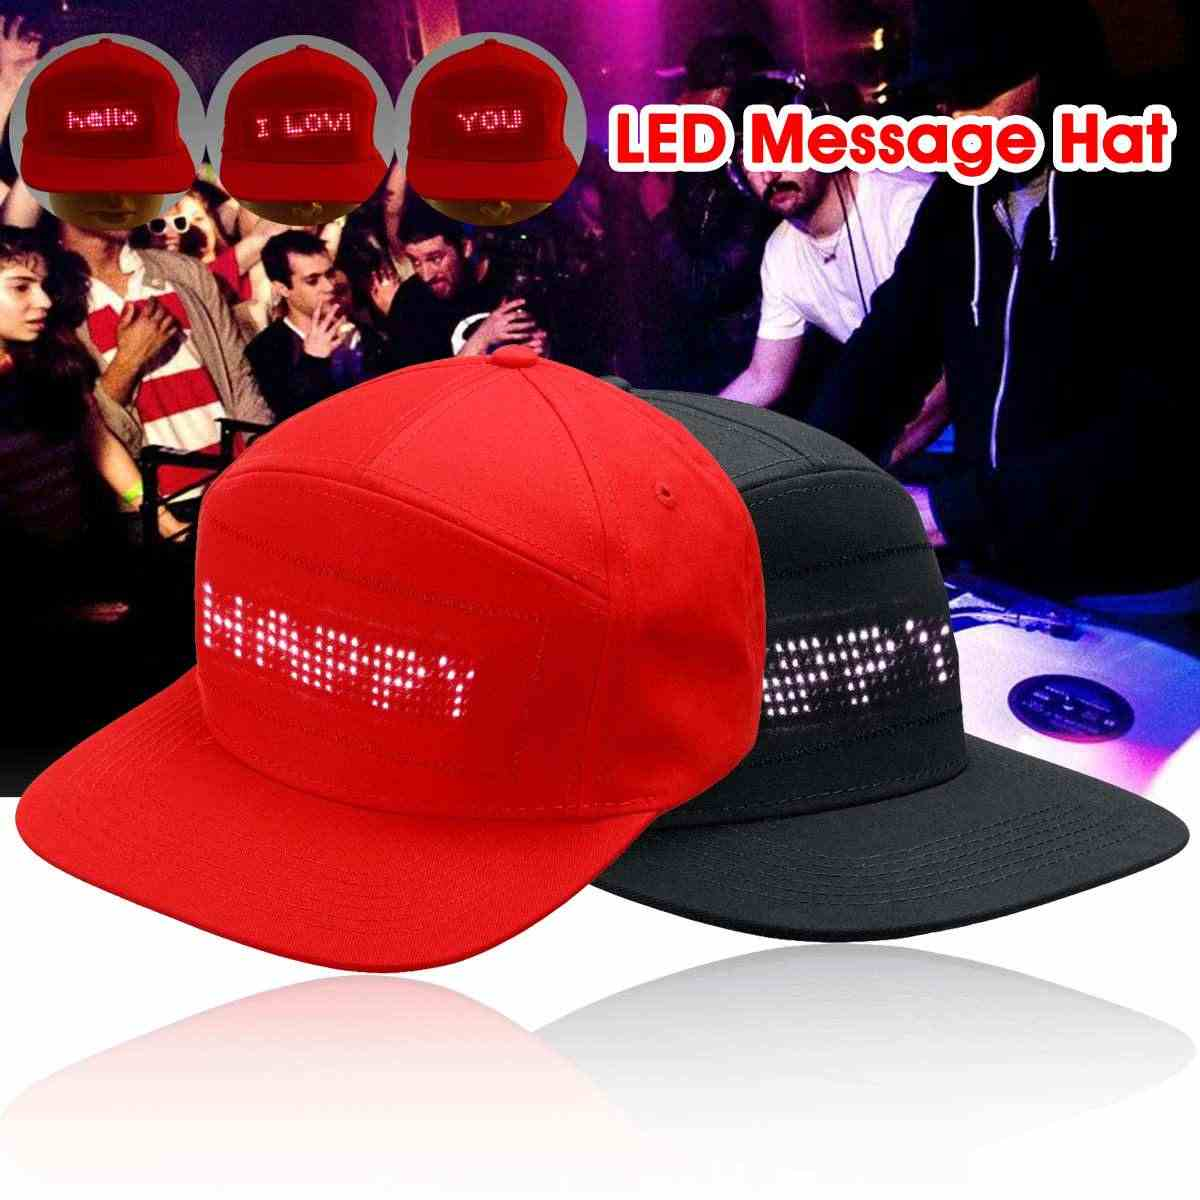 Red/Black LED Scrolling Message Hat Festival Party Stage Performance Parade Golf Fishing Hip-pop Cap Display Board Baseball Caps